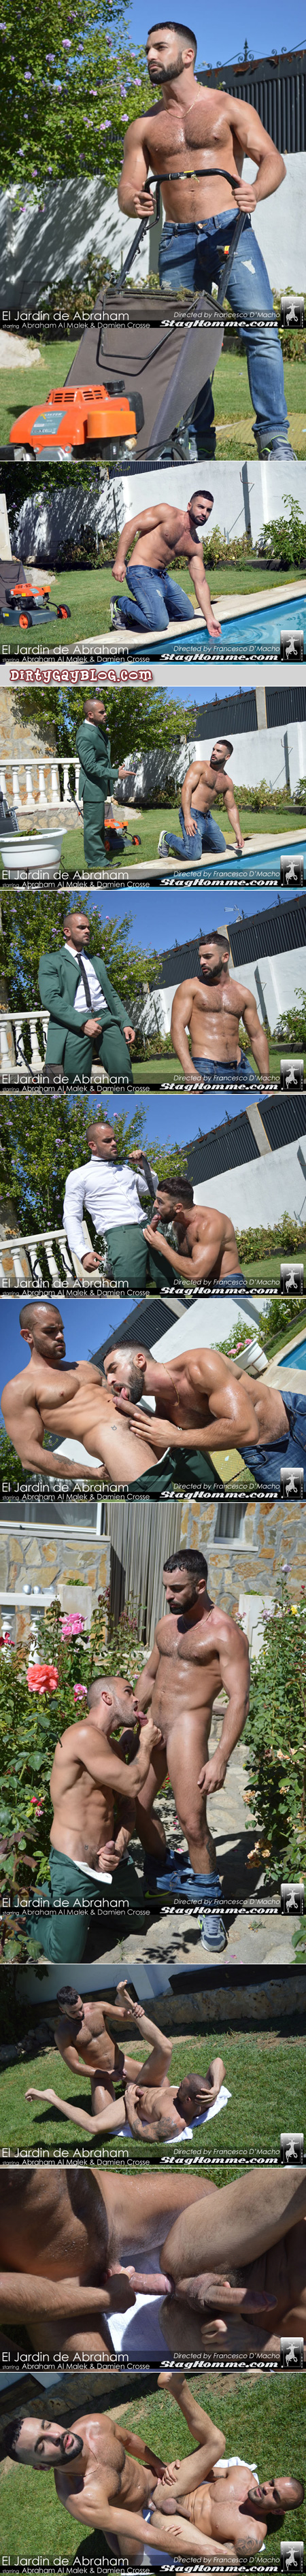 Male property owner takes advantage of his hunky shirtless gardener.